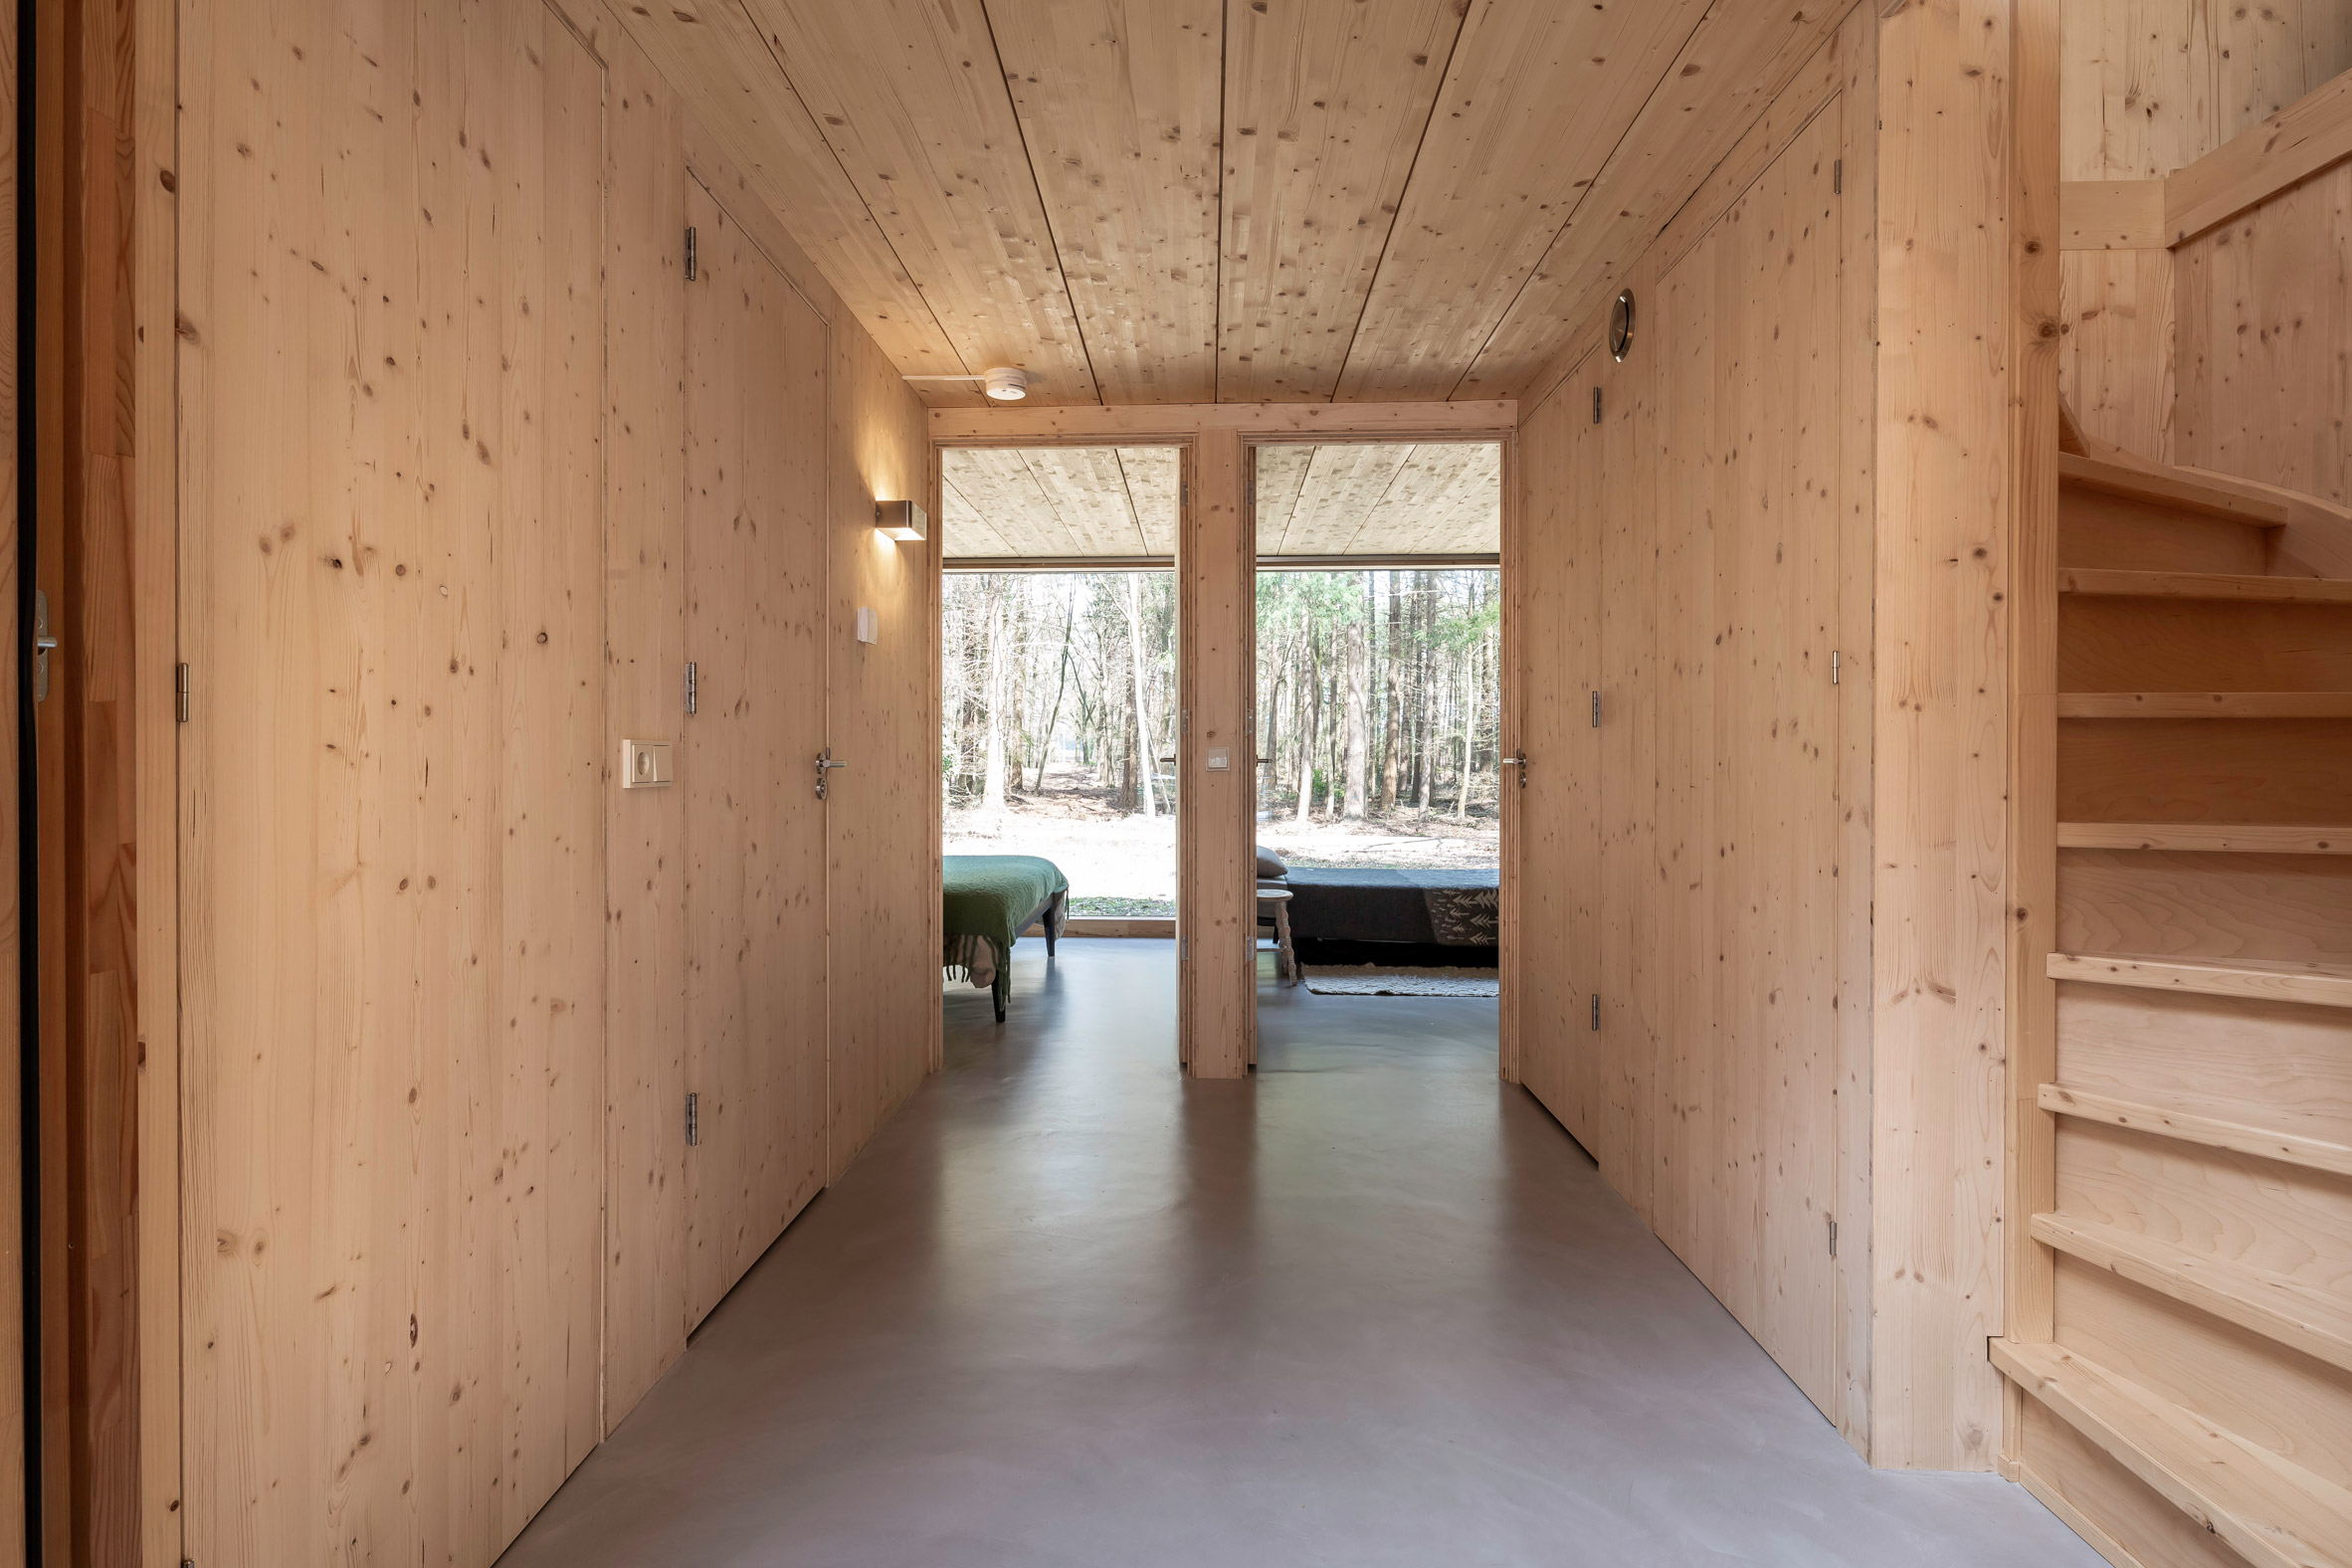 Wood-lined interiors of a Dutch cabin